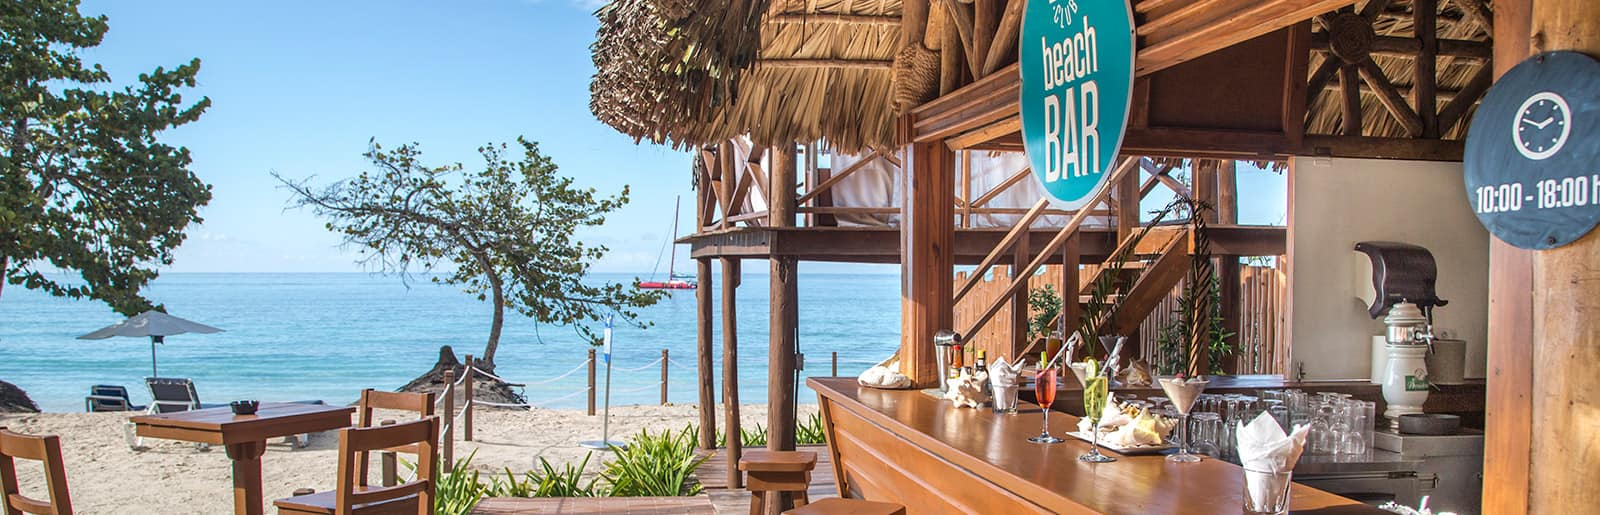 Beach Bar, Playa La Romana